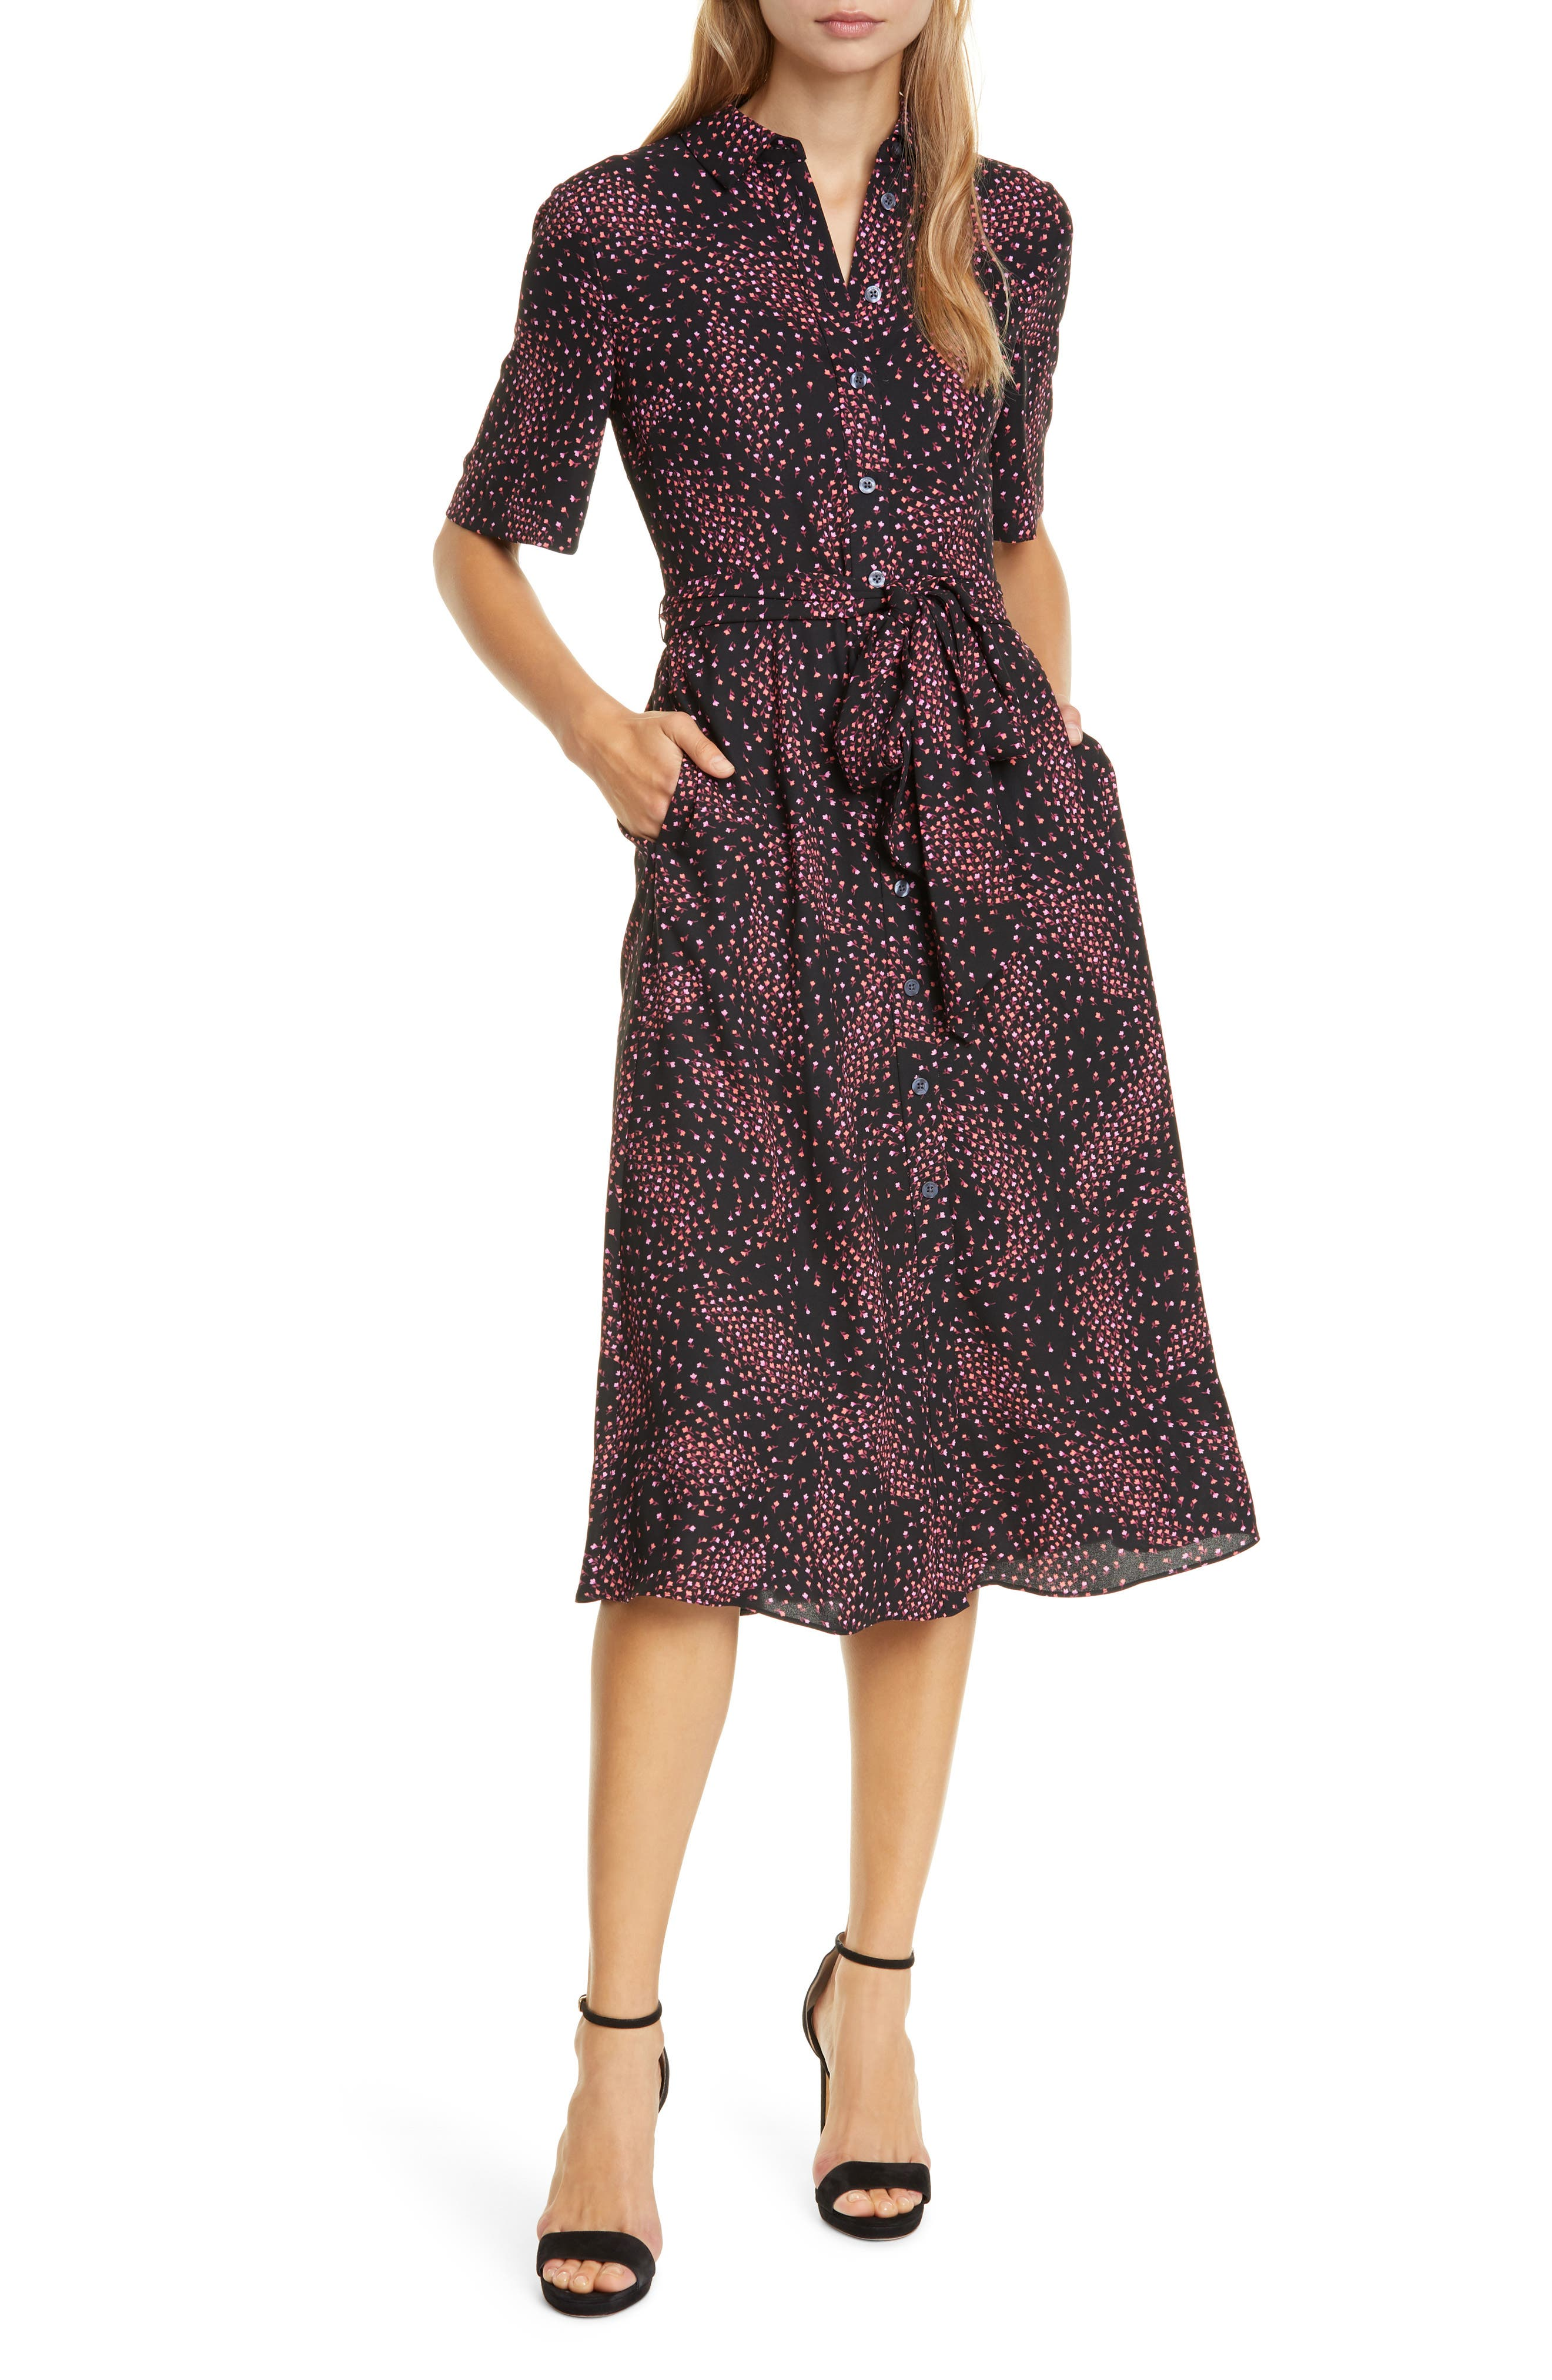 Kate Spade New York Dresses meadow smocked back shirtdress